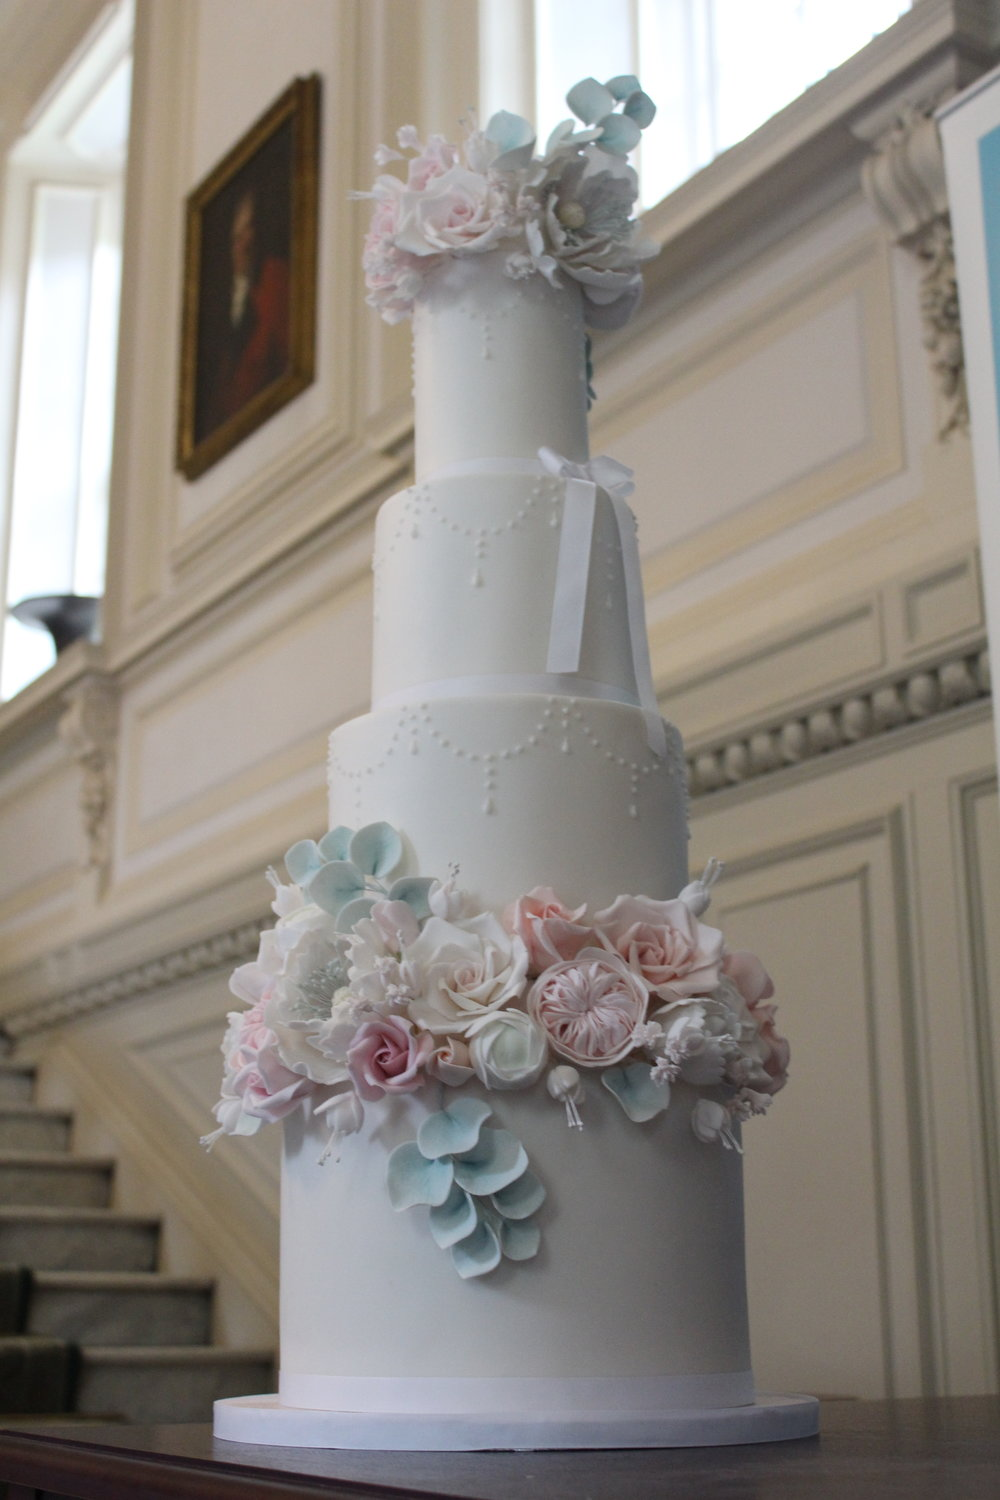 pollok house weddings 2 - dusky lush florals - rosewood cakes beautiful wedding cakes glasgow scotland.jpg